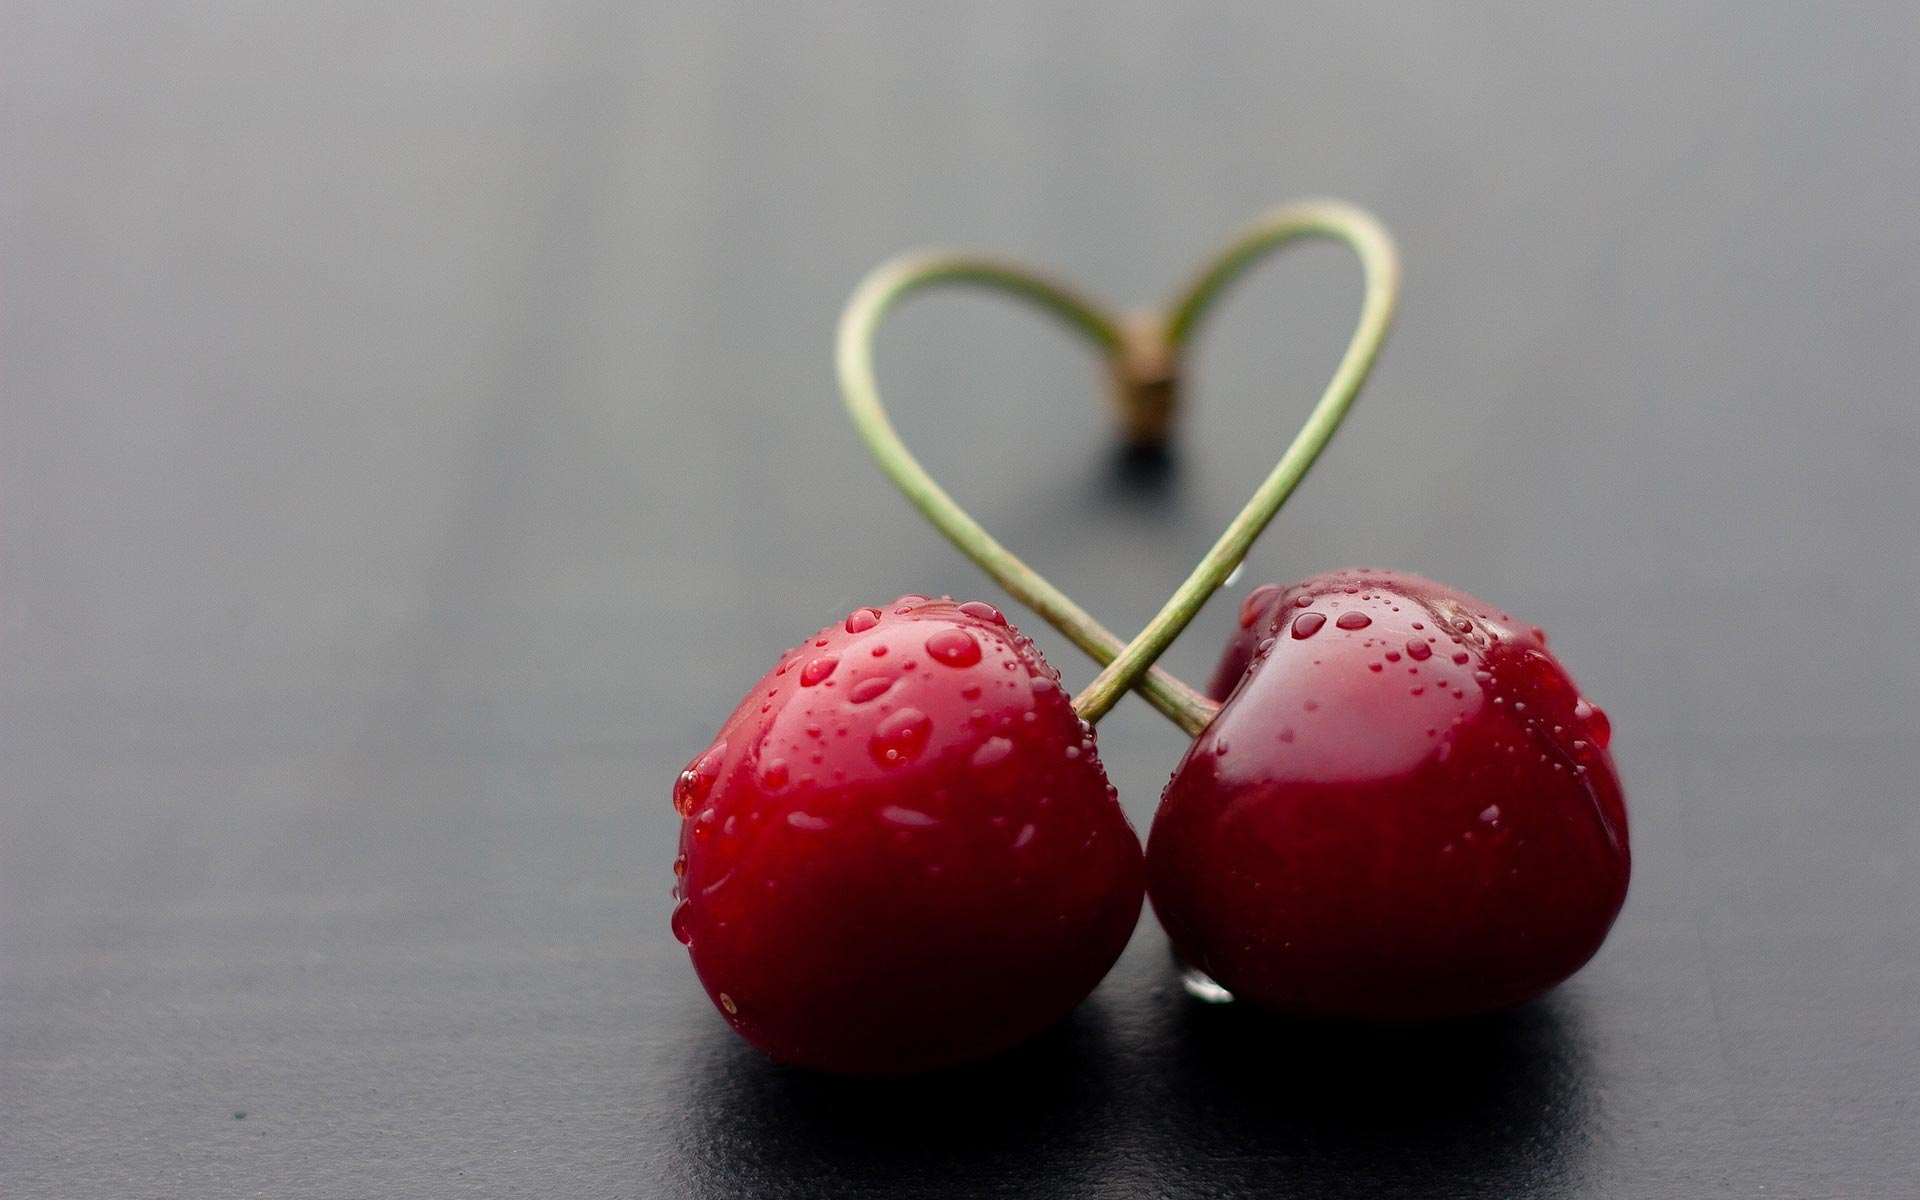 Free Download Cherry Love Full Hd Desktop Wallpapers 1080p